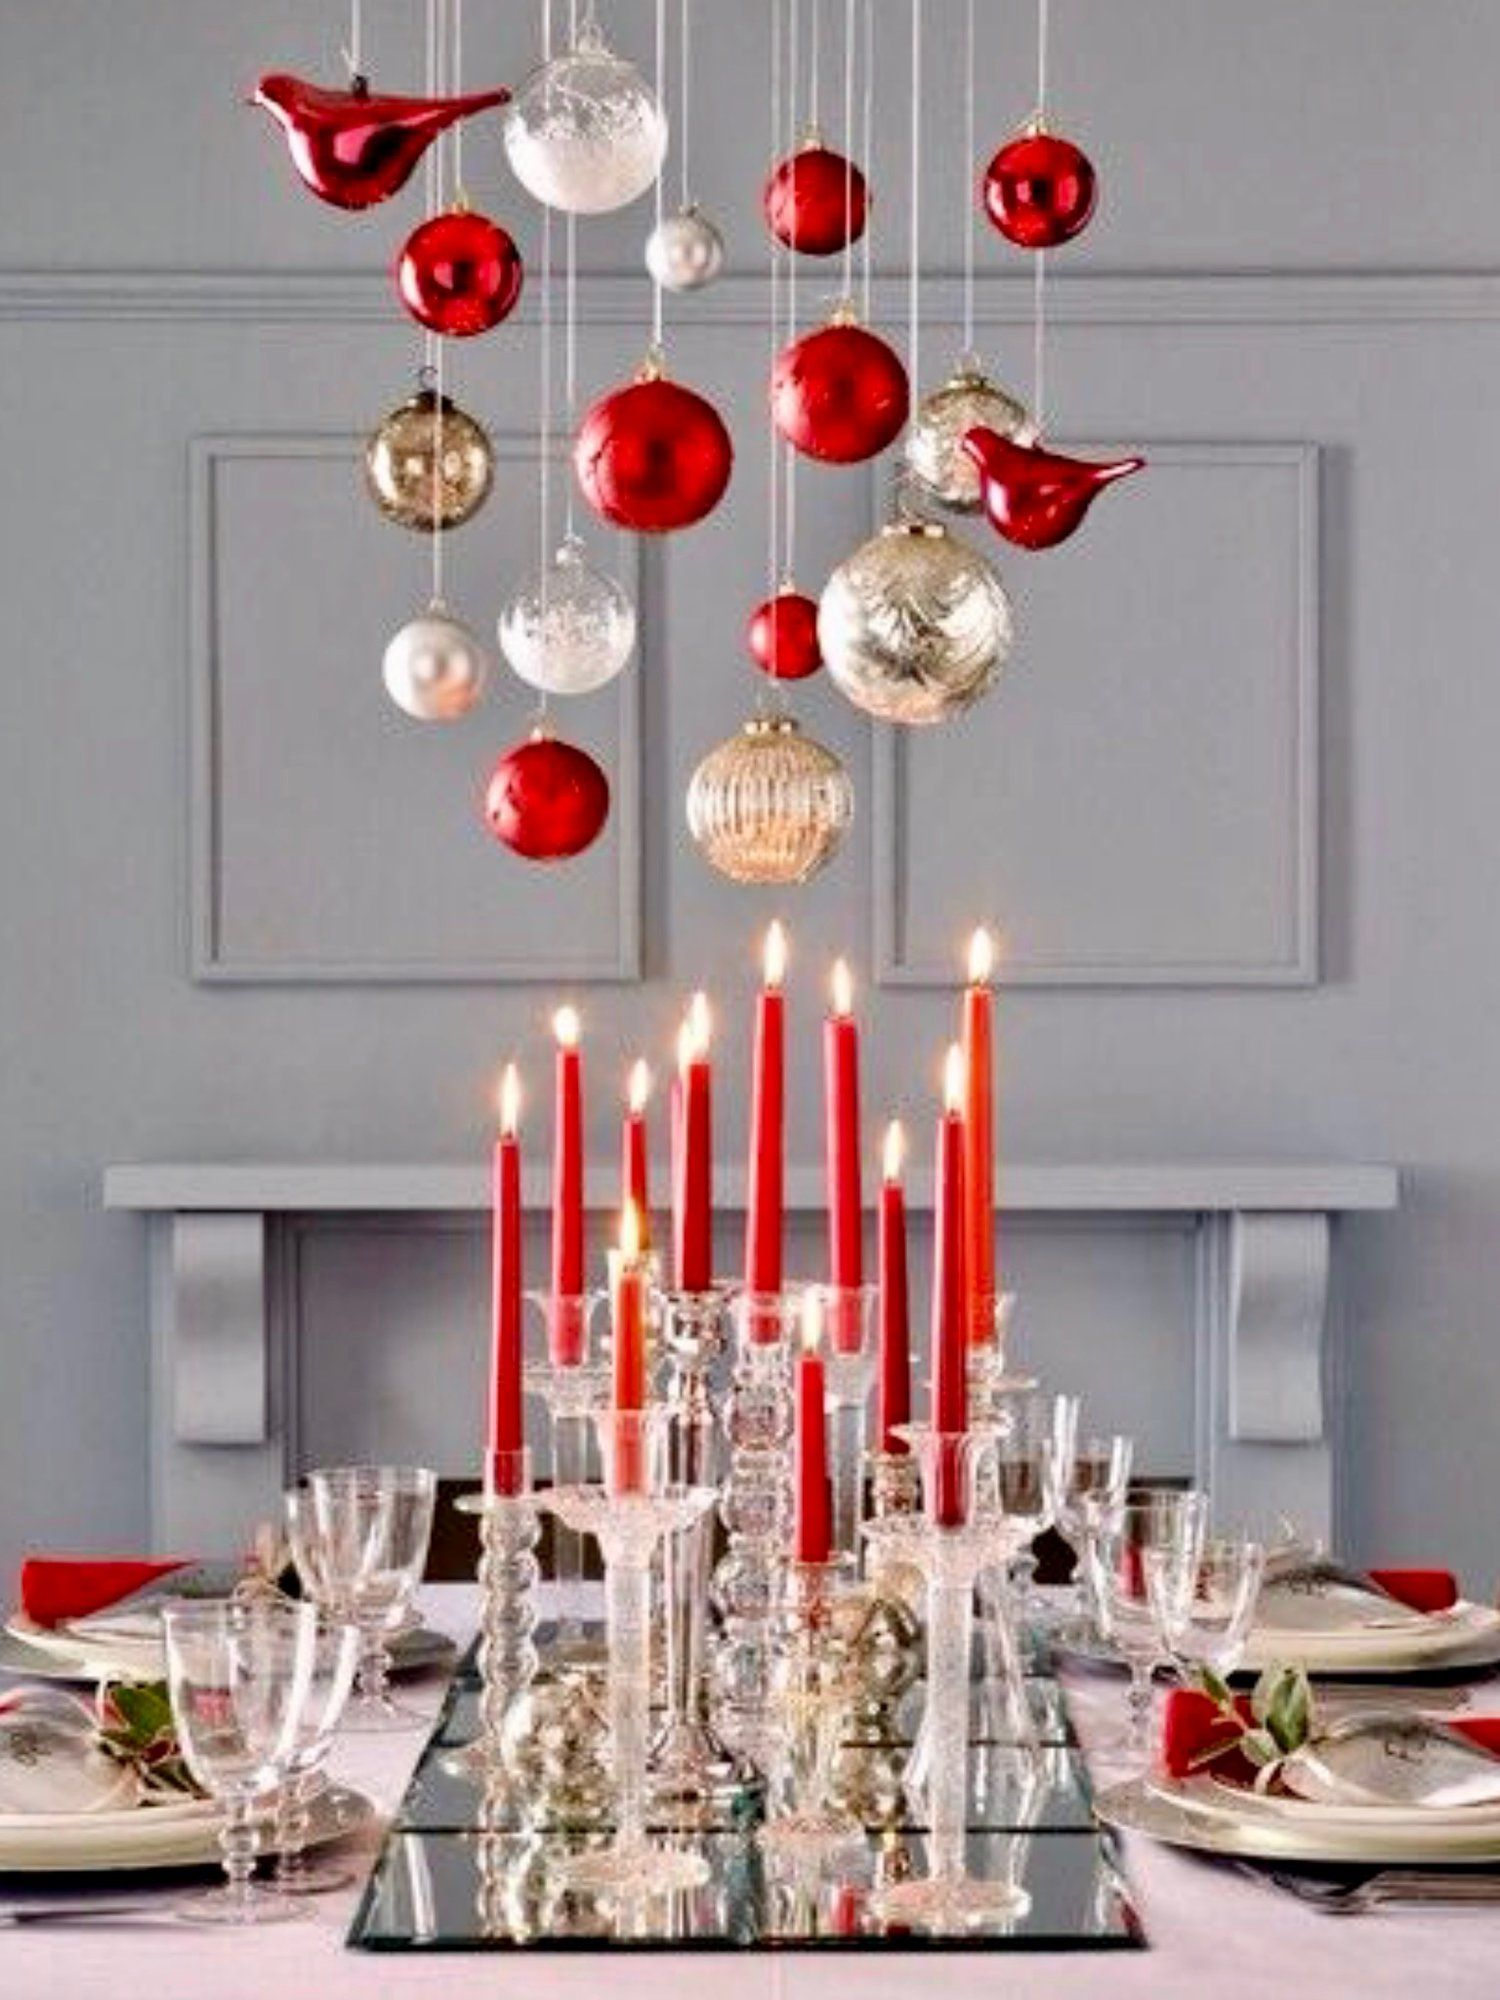 Top 150 Christmas Tables (1/5)🎄 In 2018 | Christmas | Pinterest |  Decoration, Christmas Decor And Christmas Tables